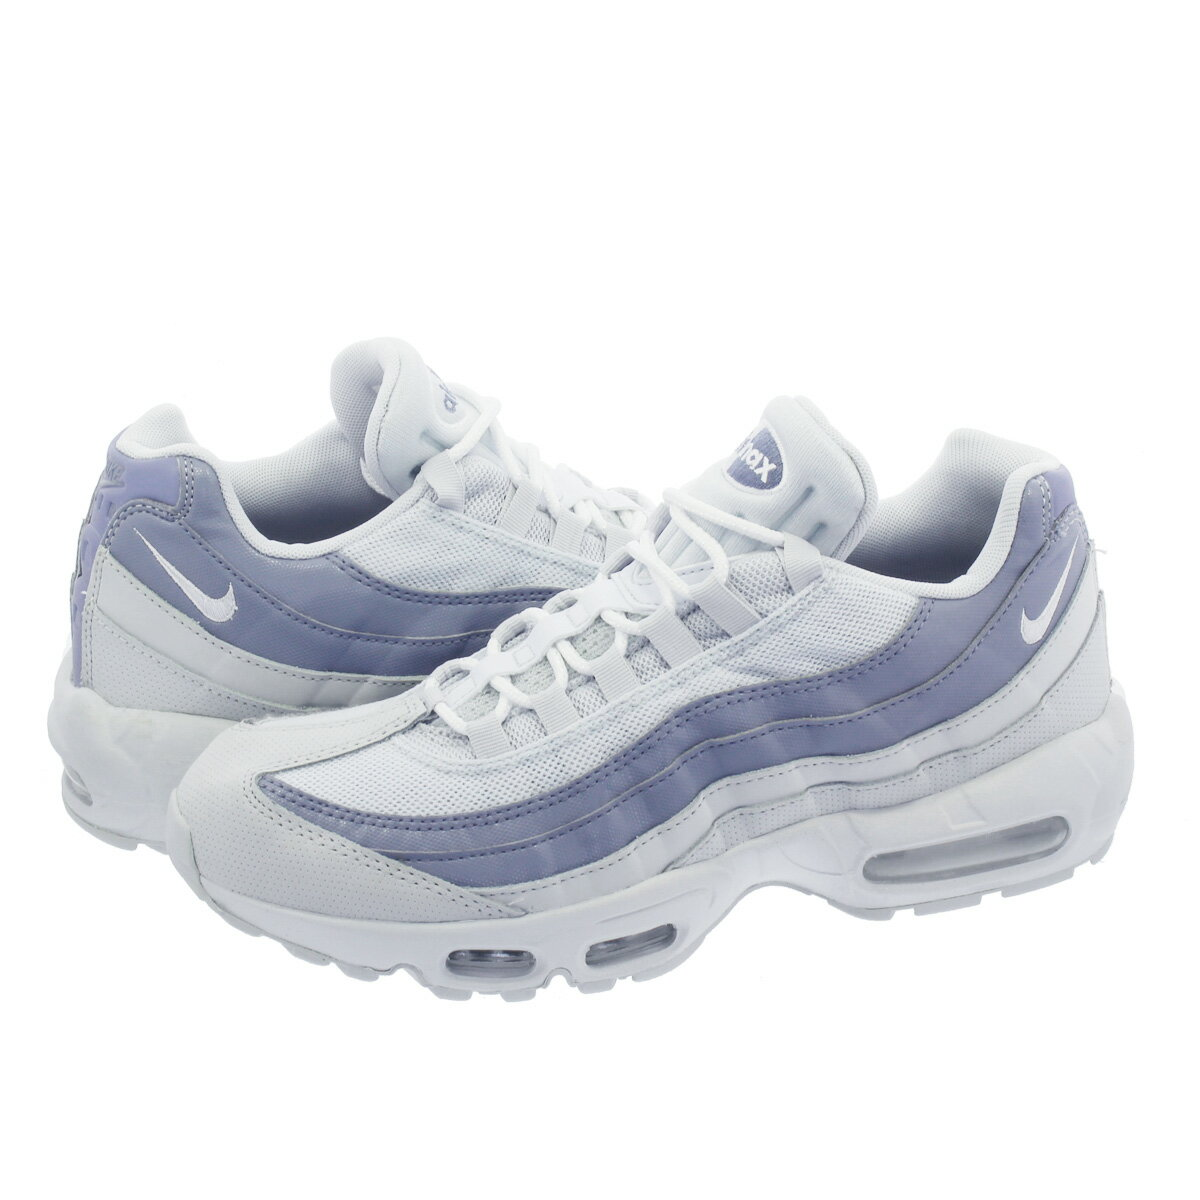 NIKE AIR MAX 95 ESSENTIAL ナイキ エア マックス 95 エッセンシャル PURE PLATINUM/ASHEN STATE/WHITE 749766-036